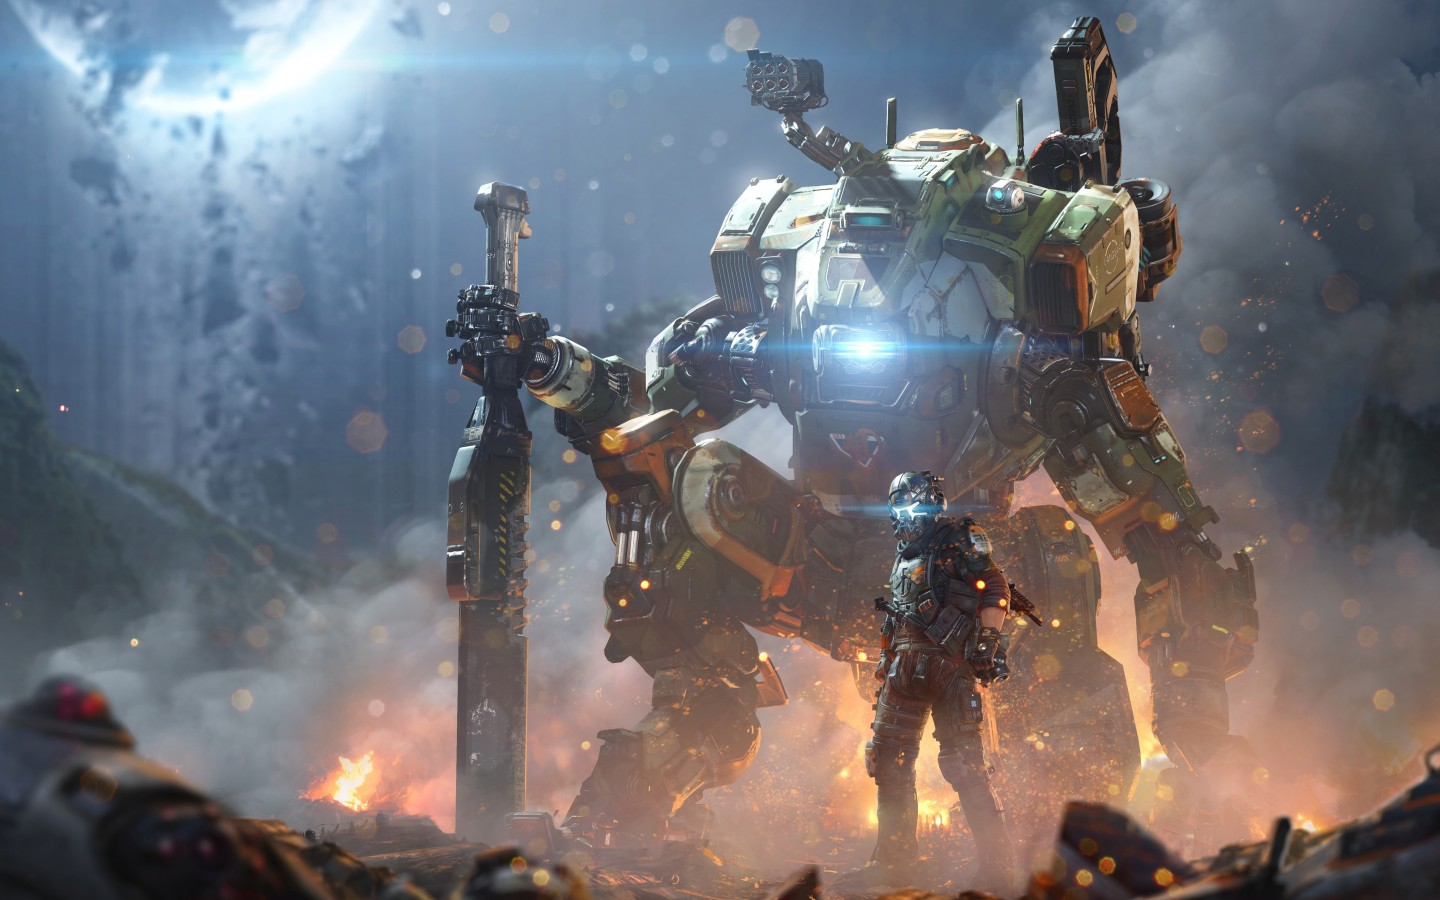 Wallpaper For Ipad Fall Titanfall 2 5k Wallpapers Hd Wallpapers Id 18911